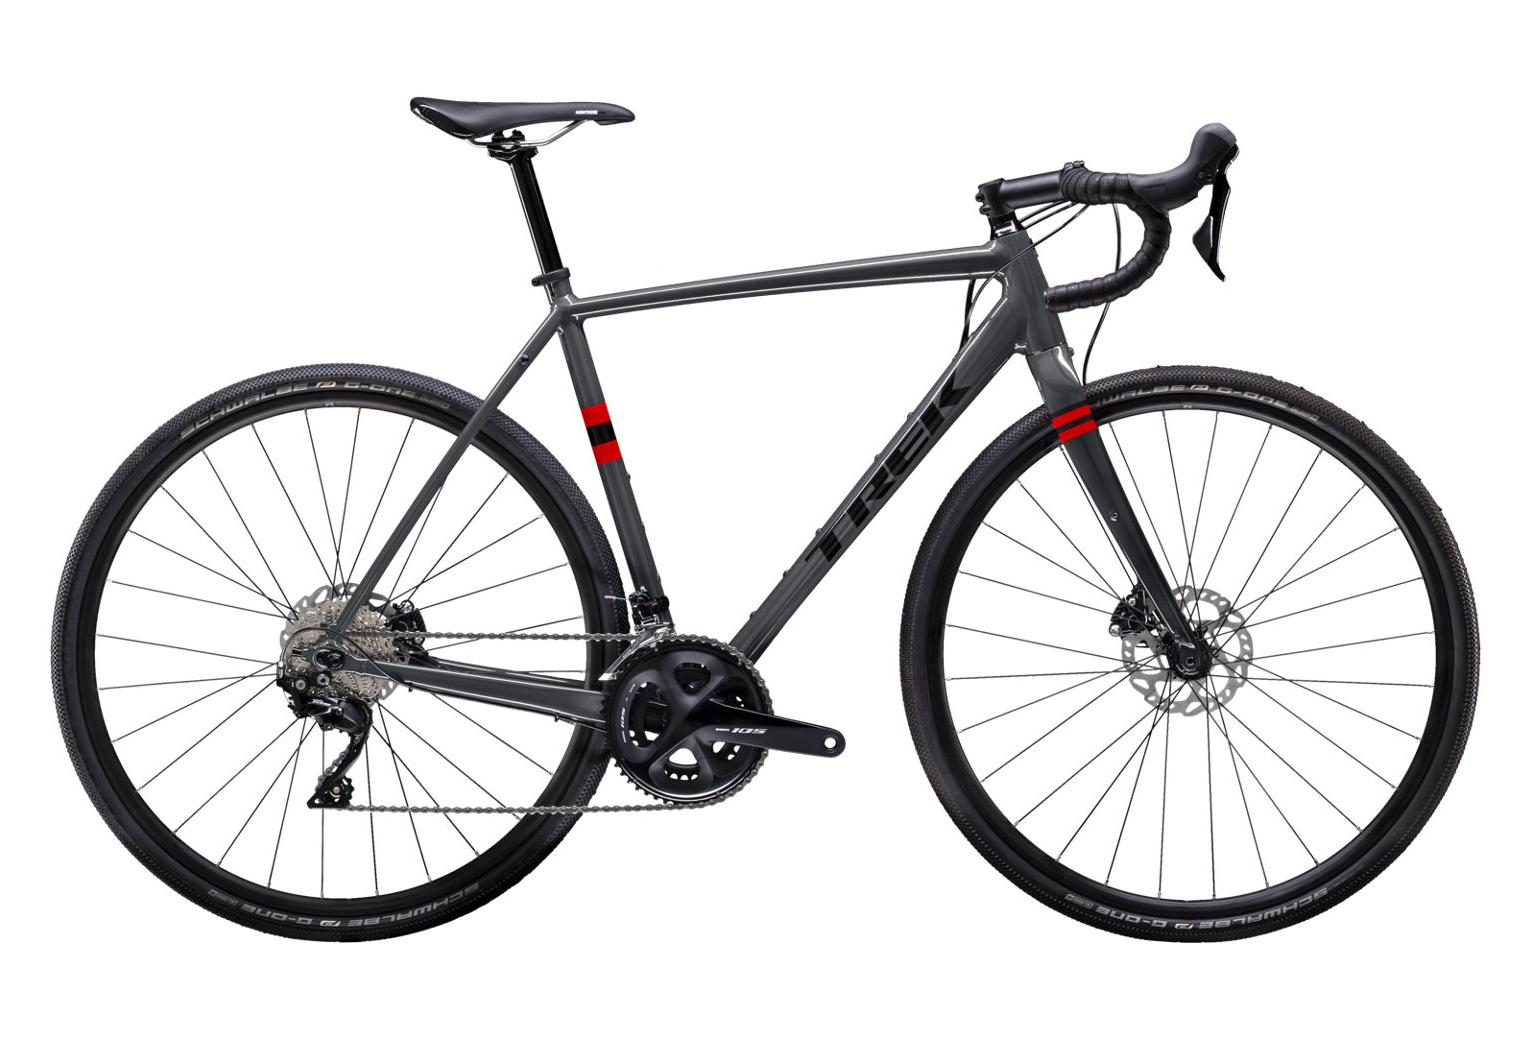 Trek Checkpoint ALR 5 Gravel Bike Shimano 105 11S 2019 Grey